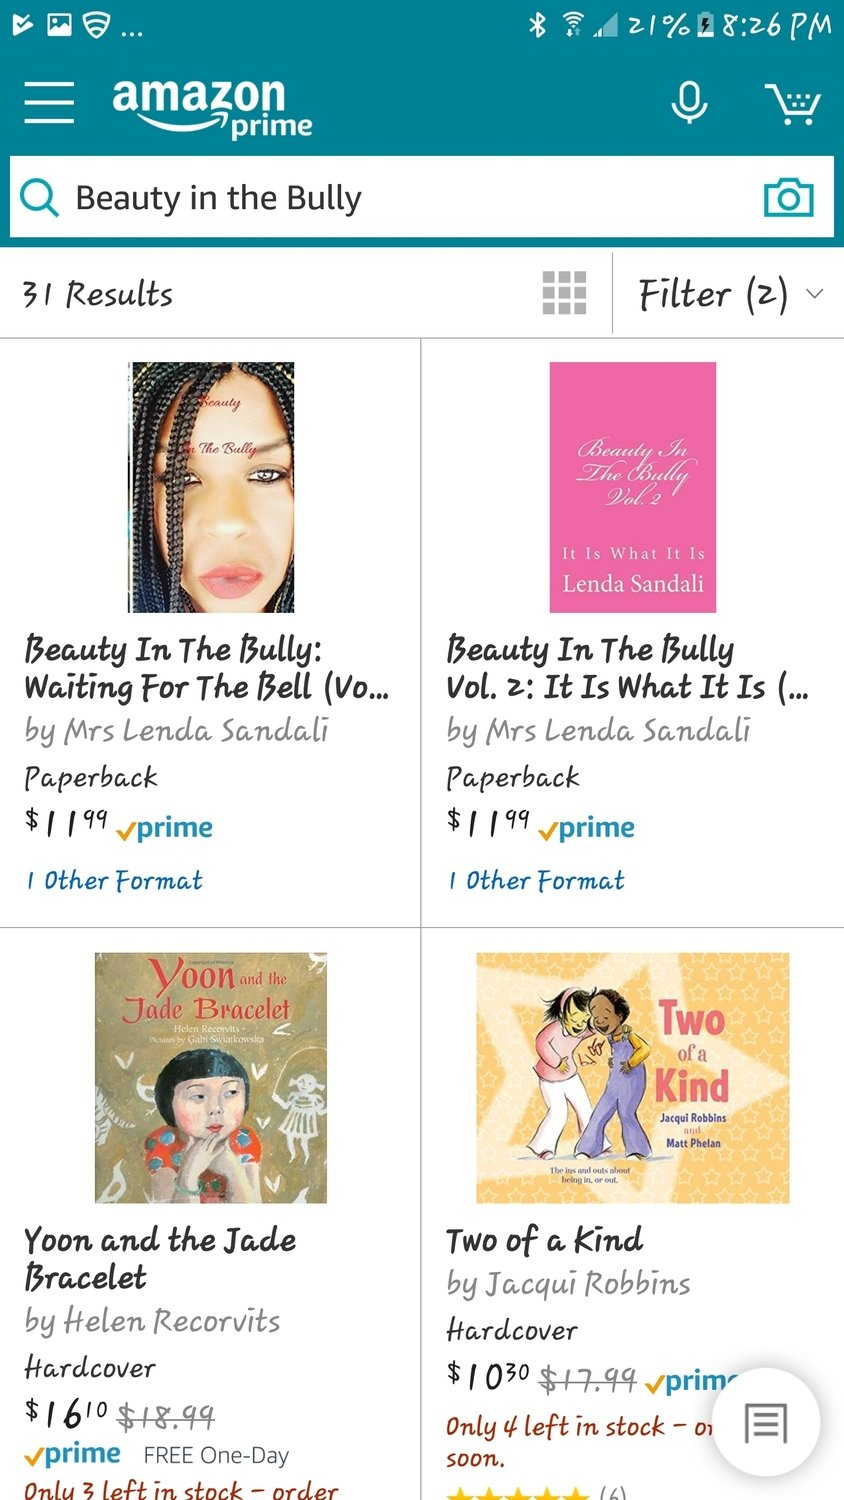 Vol.1 of 3 Beauty In The Bully